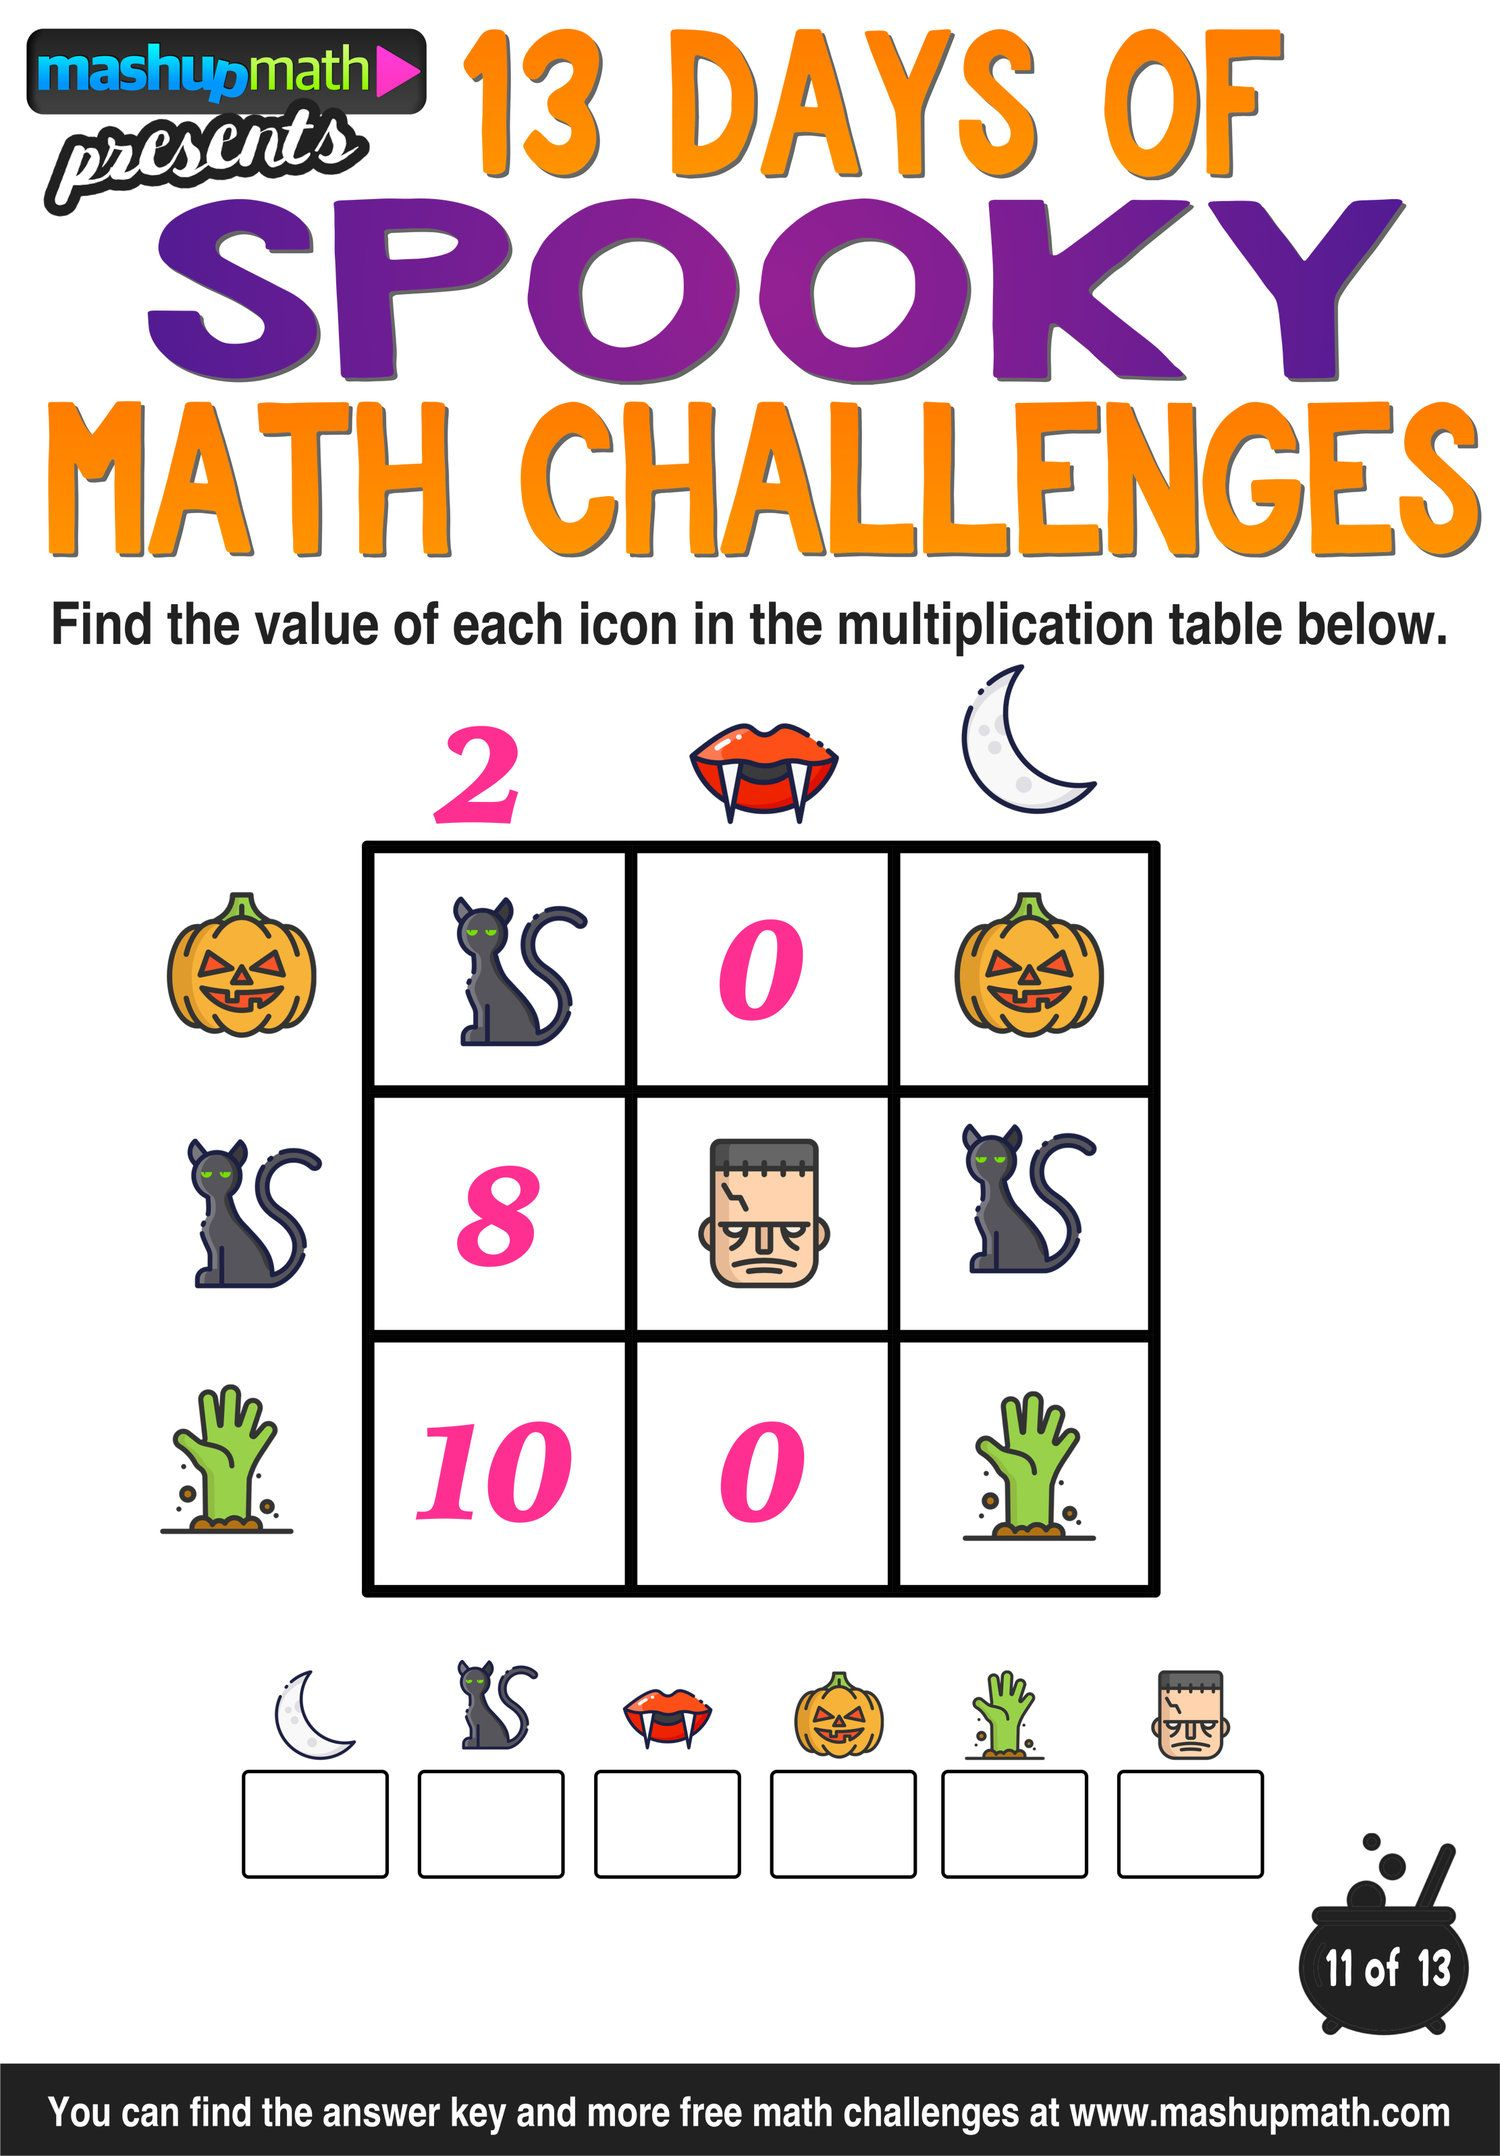 Halloween Math 13 Days Of Spooky Math Challenges For Grades 1 8 Mashup Math Math Challenge Halloween Math Activities Halloween Math